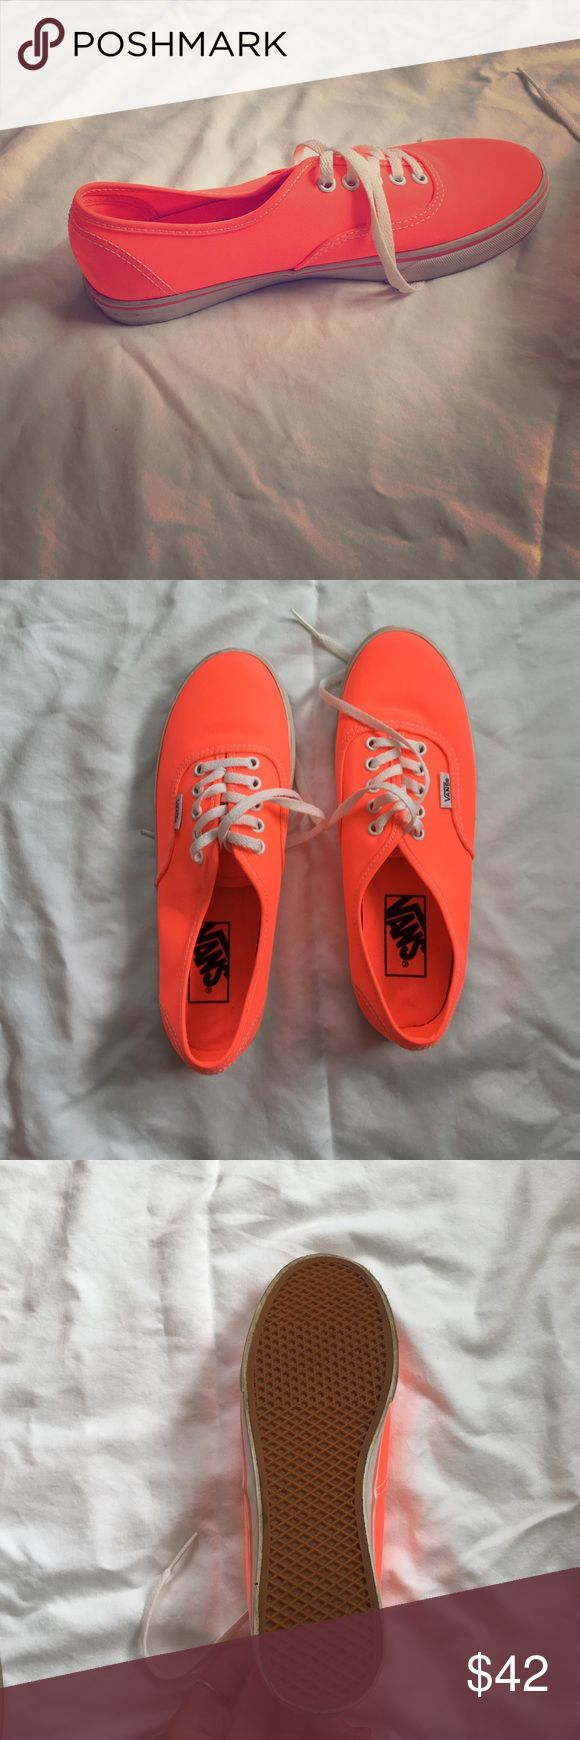 Coral vans Women's size 6.5 bright coral colored vans. I am usually a 7 but they fit well, worn once and in great condition Vans Shoes Sneakers